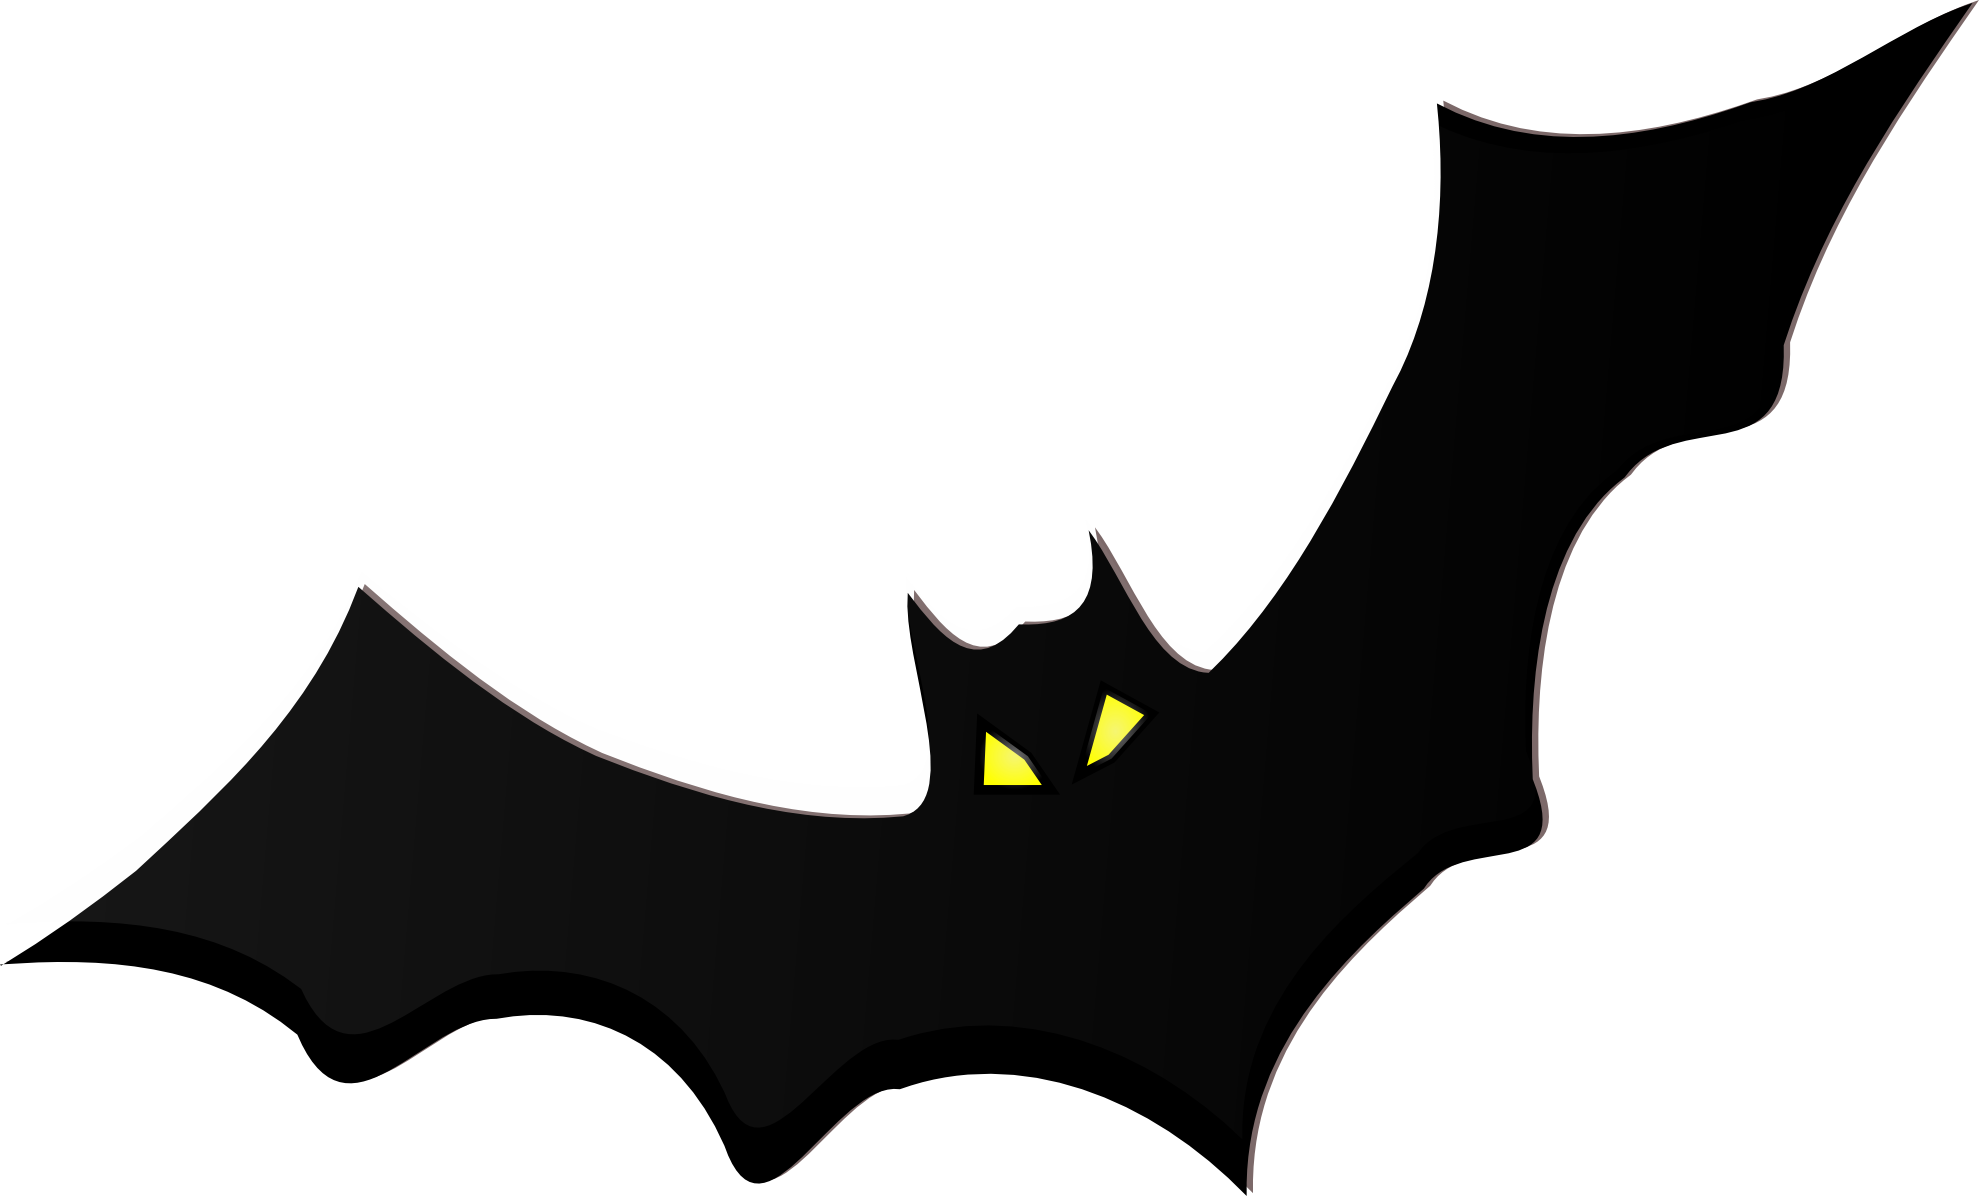 bat clipart clipart panda free clipart images rh clipartpanda com bat clip art black and white bat clip art no background